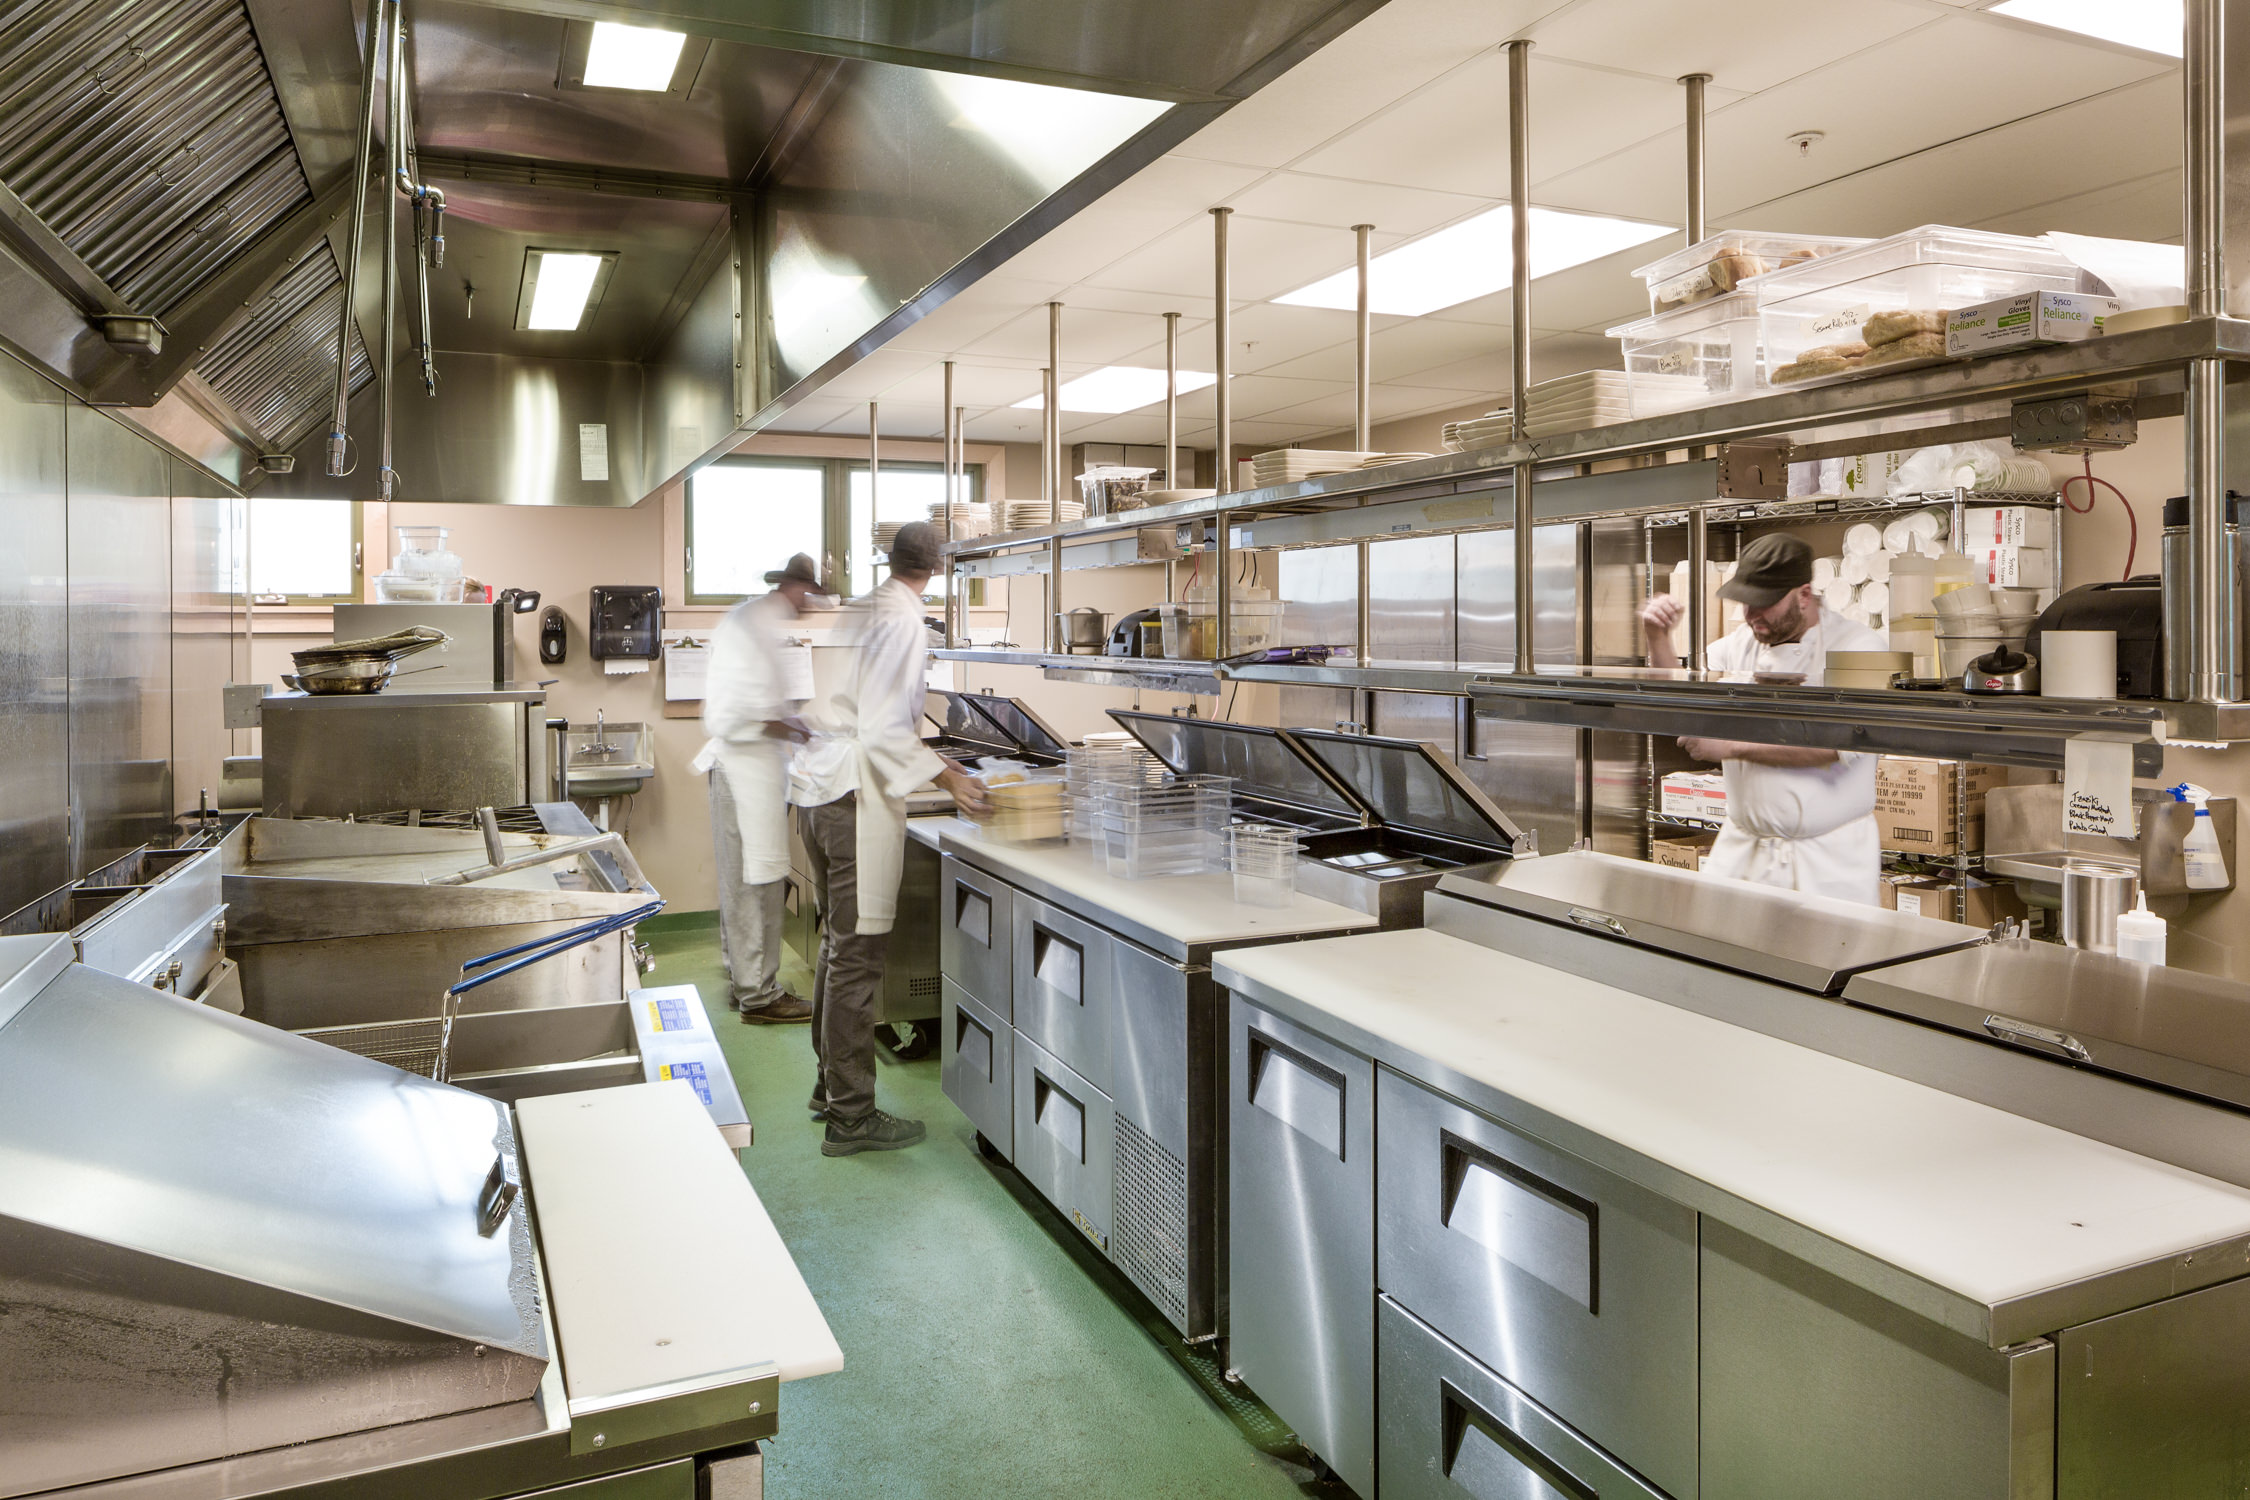 A photo of sous chefs busily prepping for dinner in the commercial kitchen at the von Trapp Brewery Bierhall by architecture photographer Stina Booth